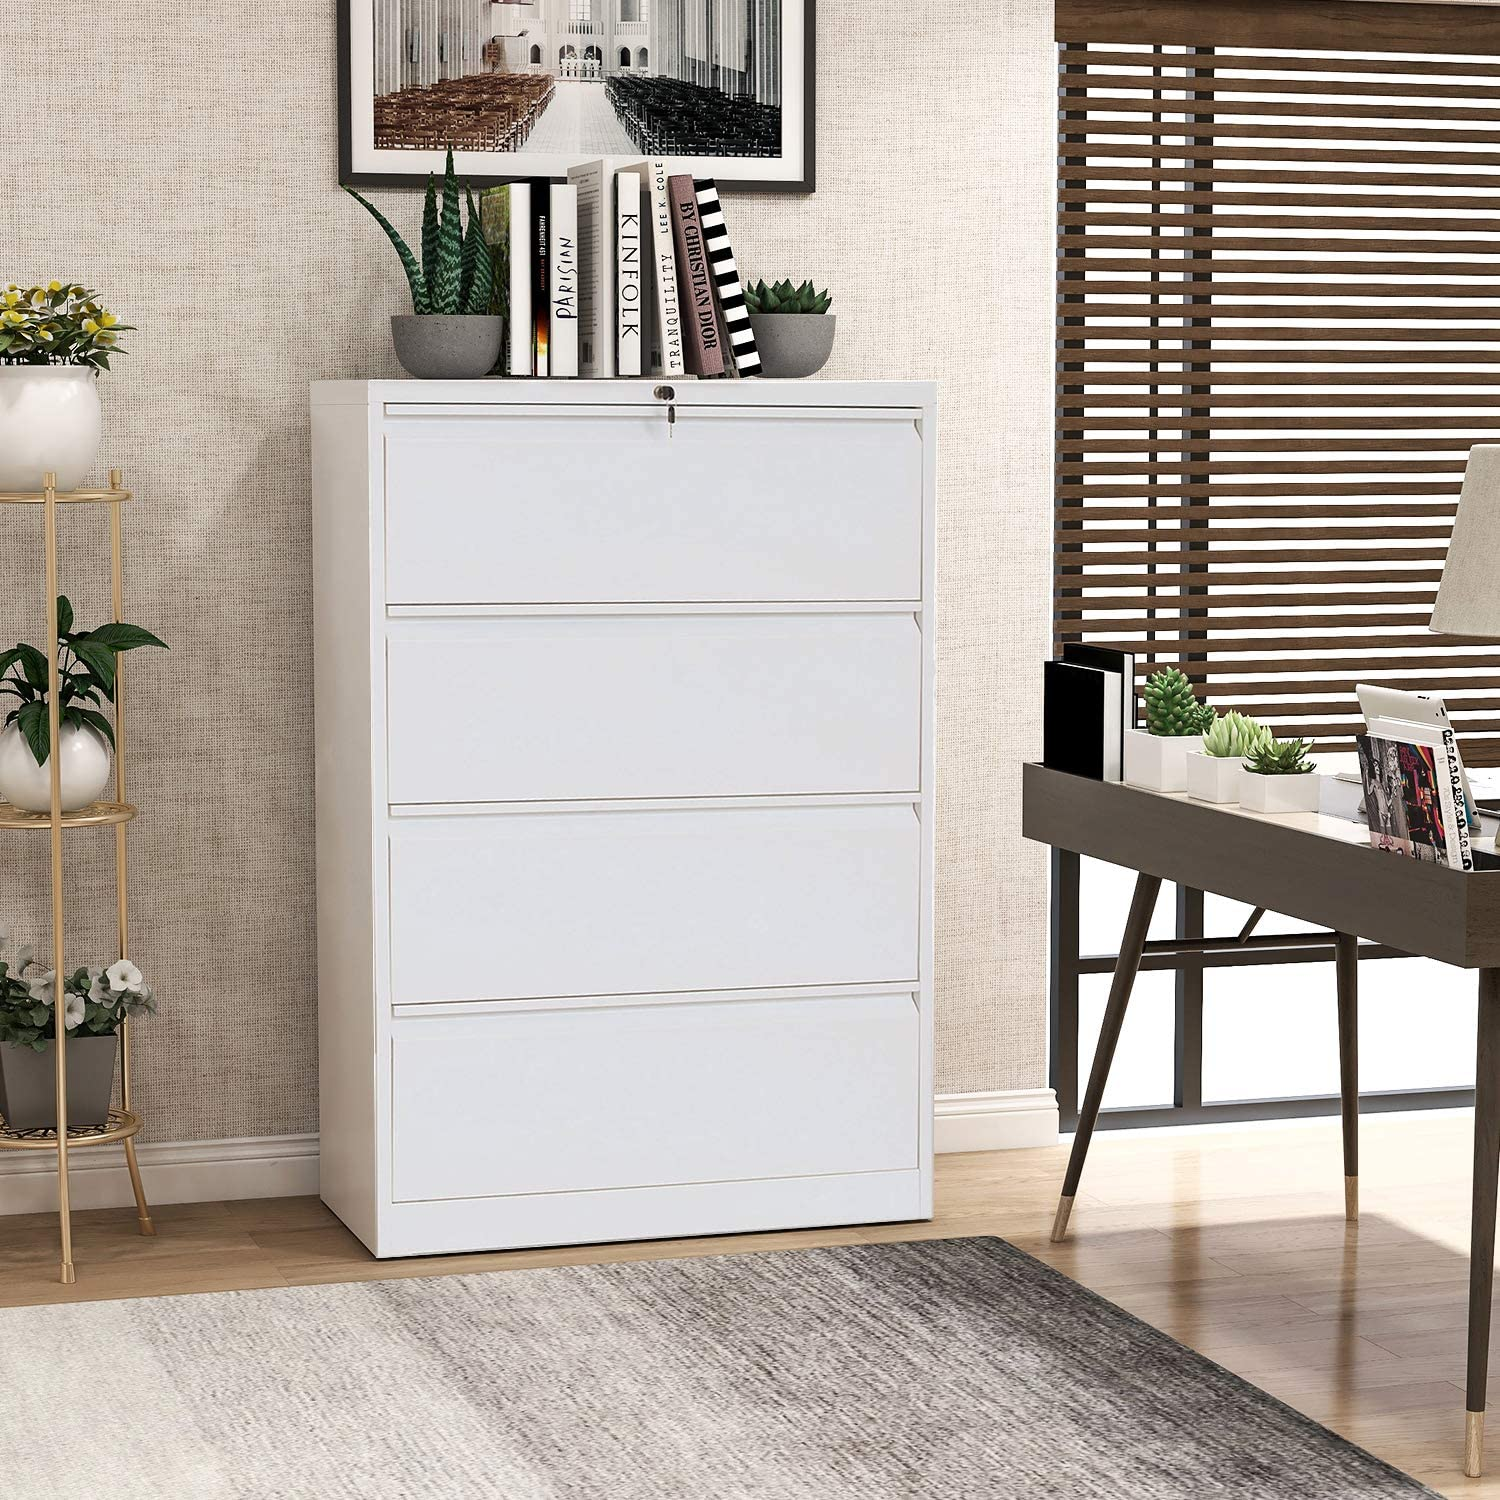 DANGRUUT Upgraded Version Large Metal Steel Lateral File Cabinet 4 Drawers with Lock, Stronger Heavy-Duty Filing Cabinet Lockable with Anti-Tilt Structure and 2 Keys for Home Office, 2020 (White-A)